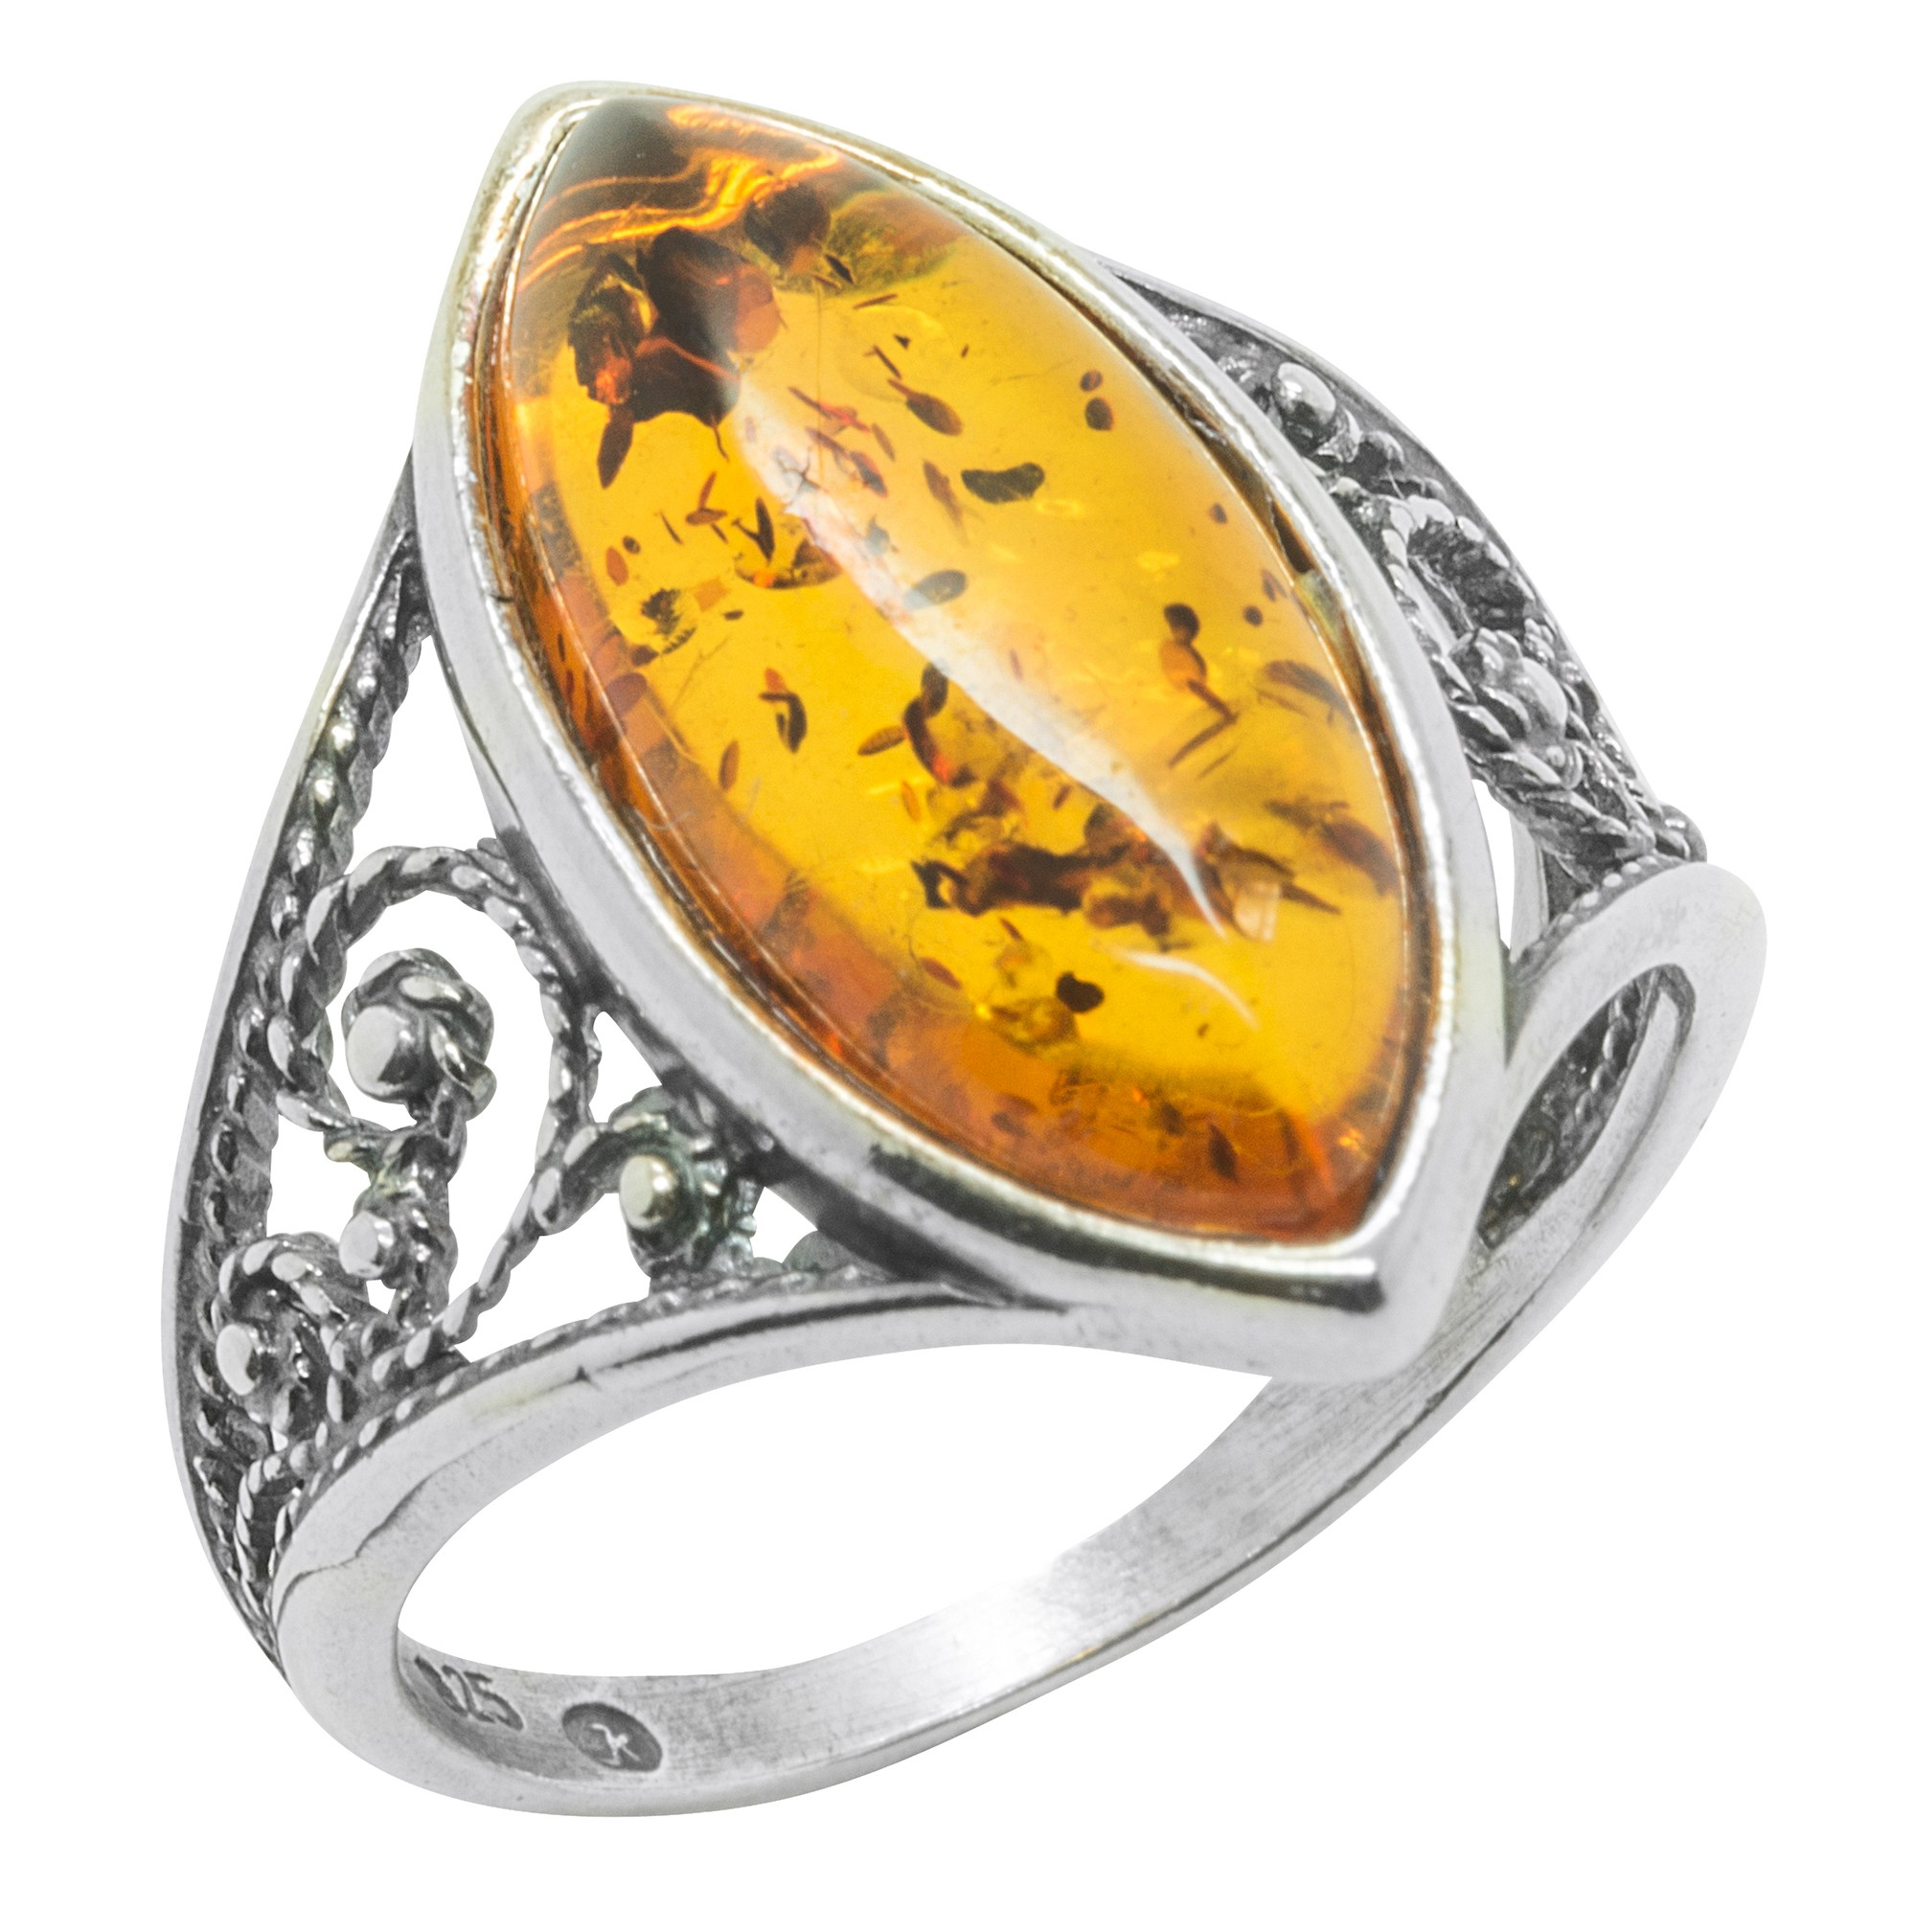 id heat j sale c amber carat at no shape ring cert sapphire rings jewelry engagement for pear org yellow gia